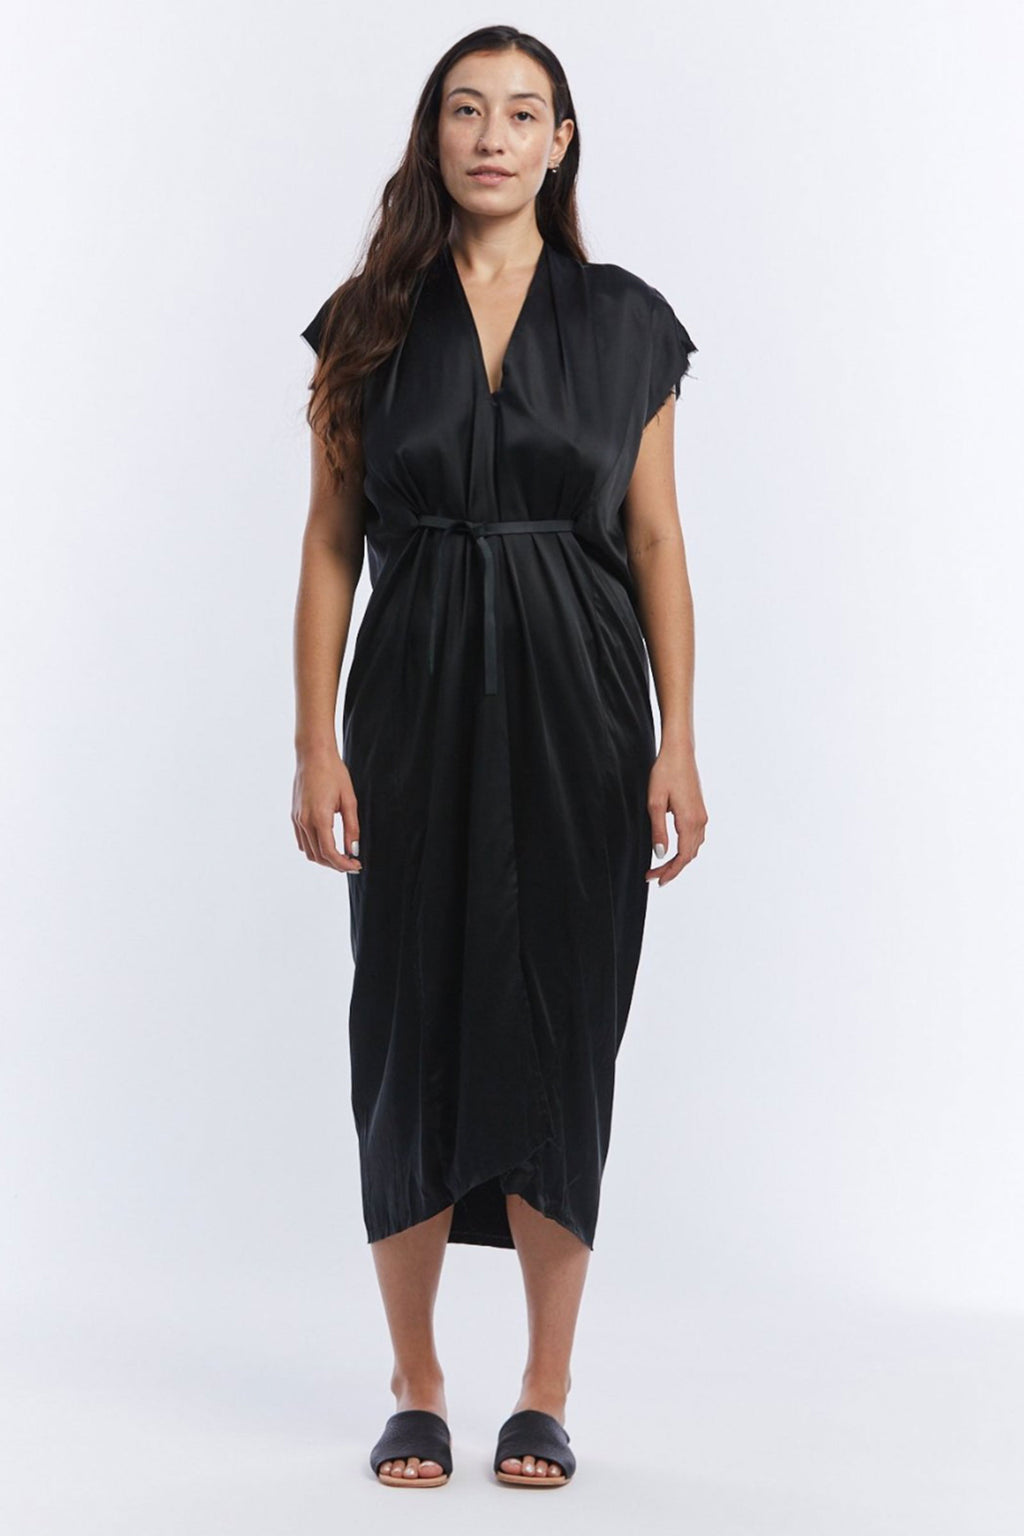 Miranda Bennett Knot Dress in Black Silk Charmeuse